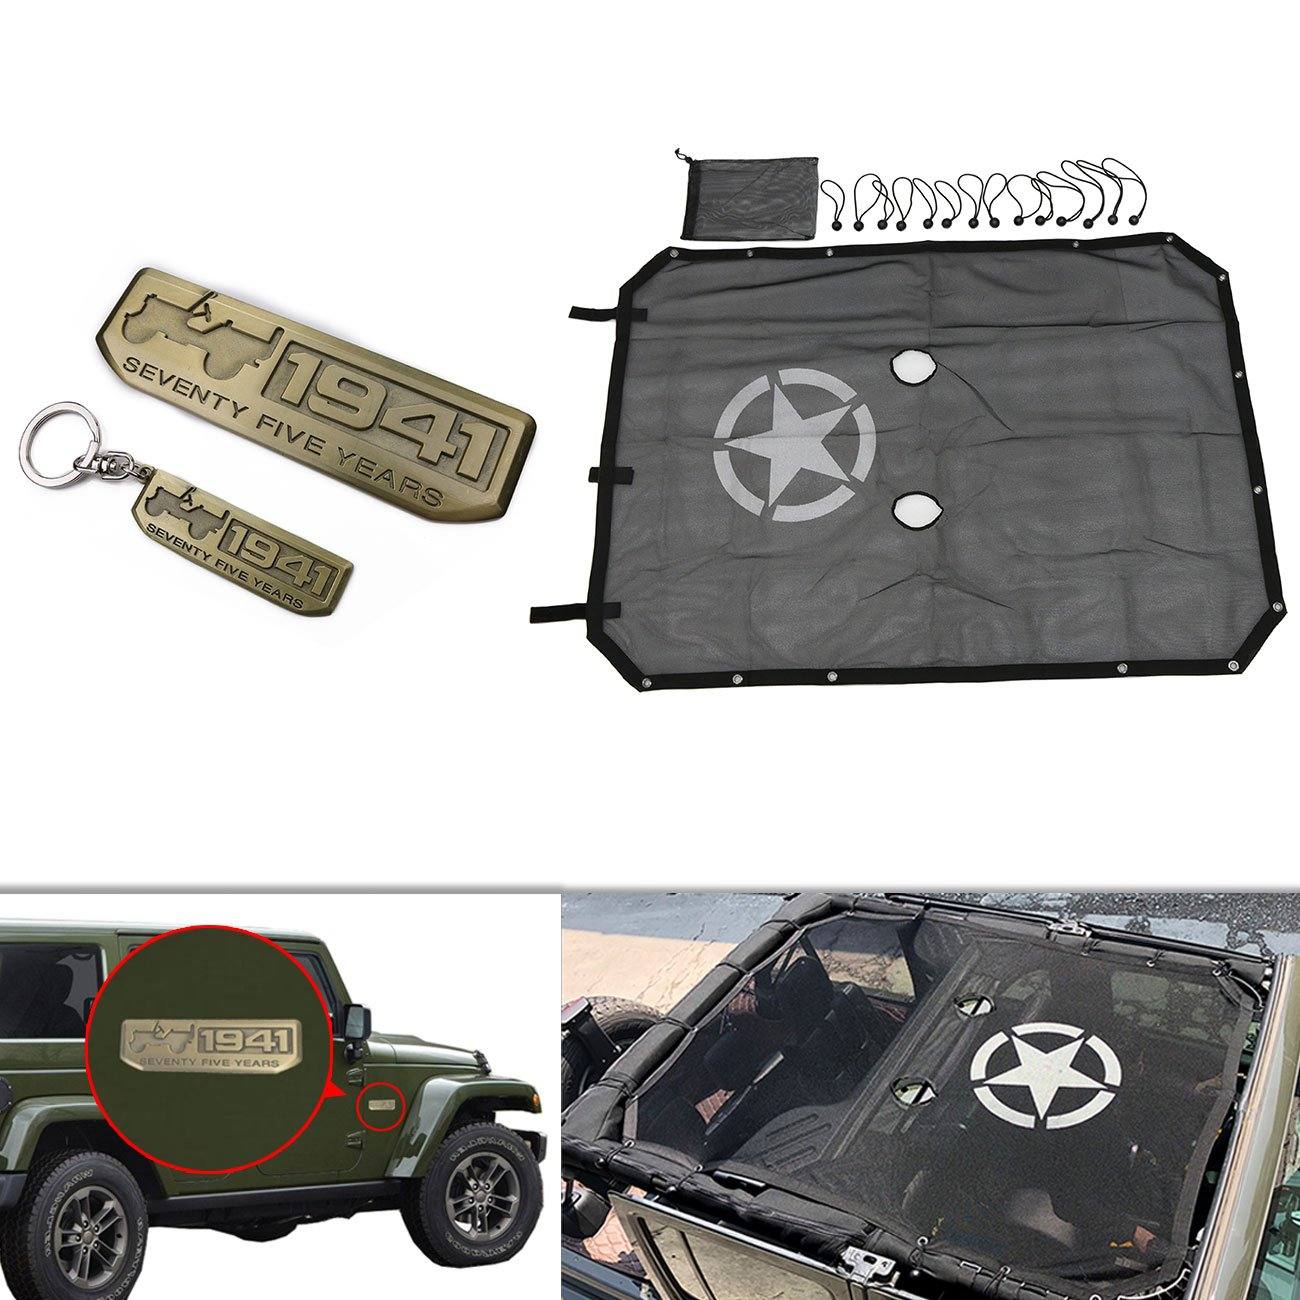 buyinhouse for Jeep Wrangler JKU 4-Door (2007-2017) Mesh Shade Top Cover (Freedom Stars) Upgrade Durable Polyester Provides UV Sun Protection (3 Year Warranty + Double Gifts)